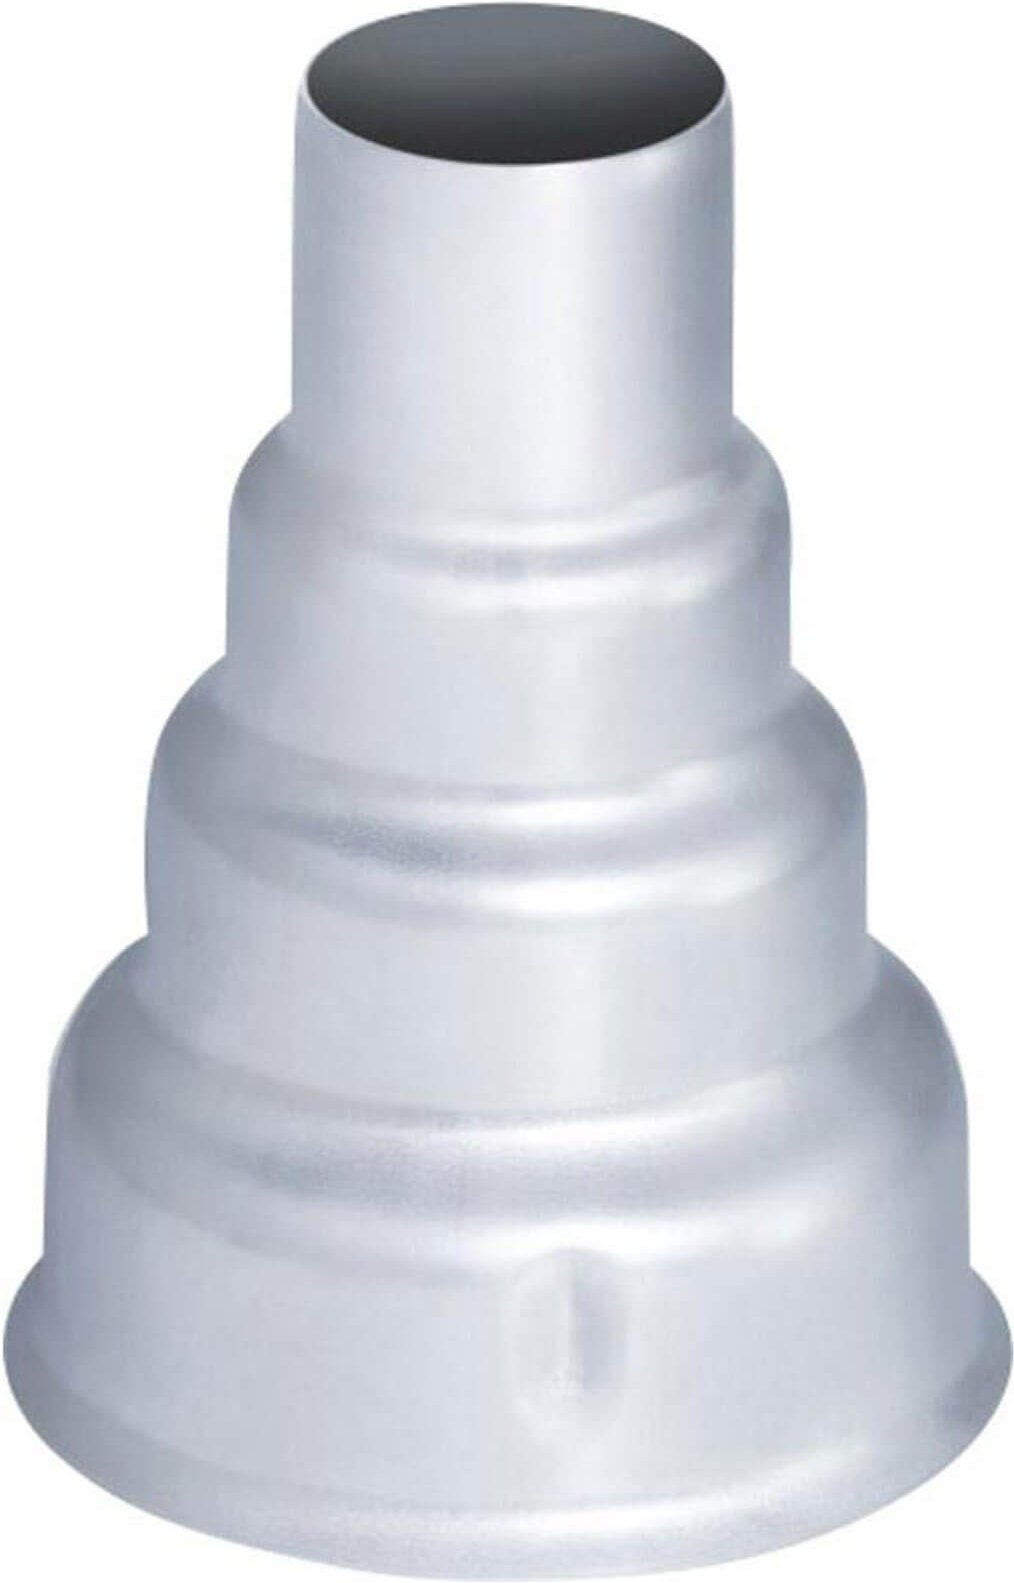 Steinel Reduction Nozzle for HL Models and HG 2120 E  2320 E and 2220 E 14mm